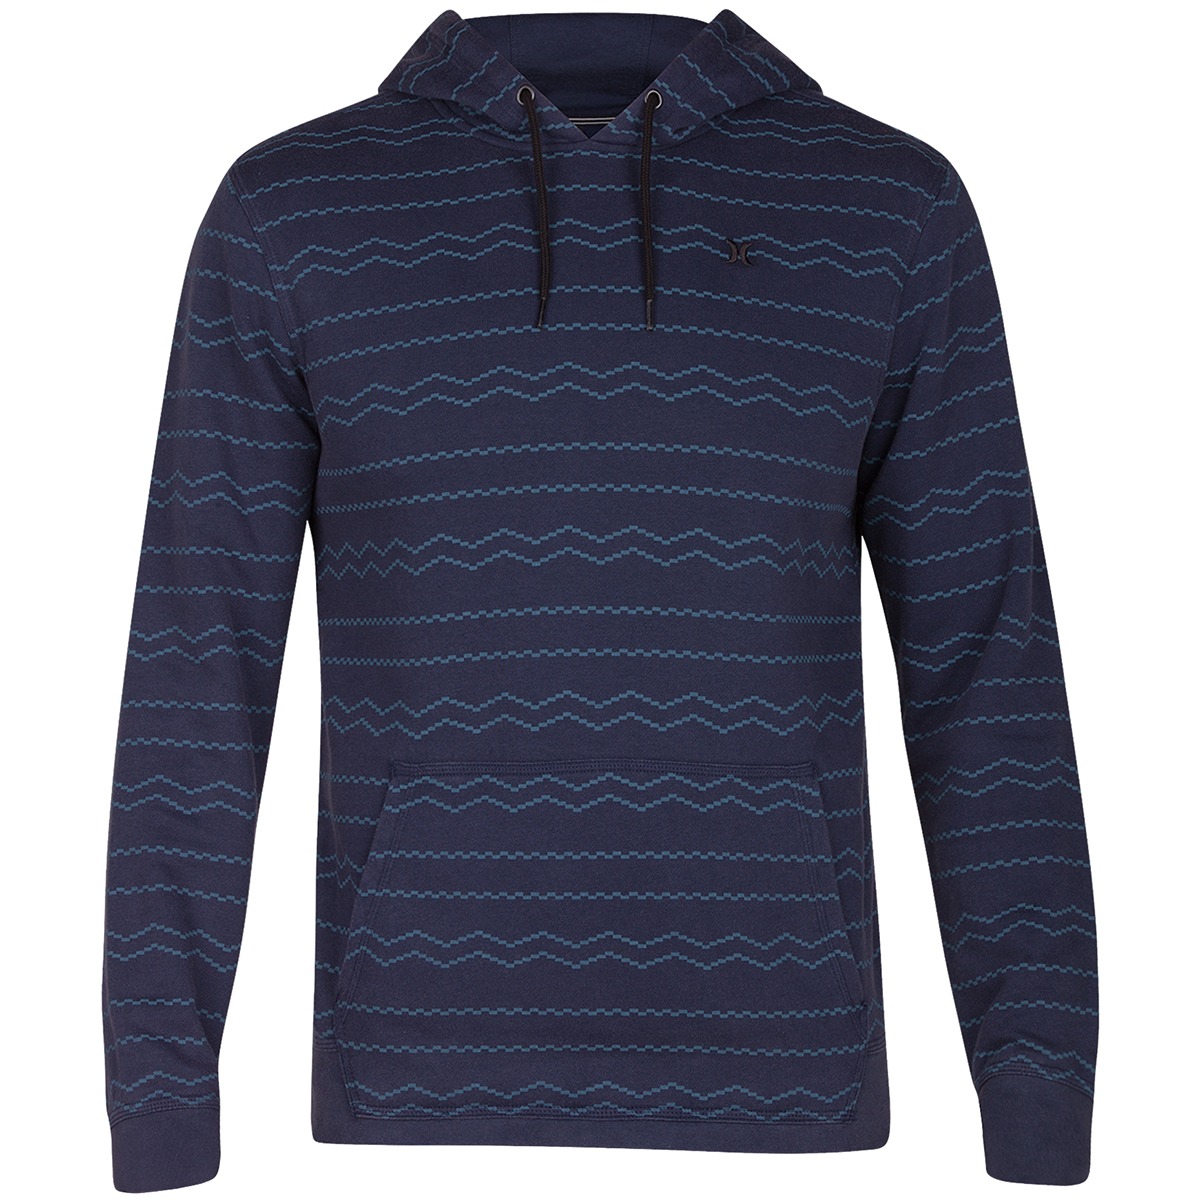 Hurley Guys' Beach Club Destroy Pismo Fleece Pullover Hoodie - Blue, L